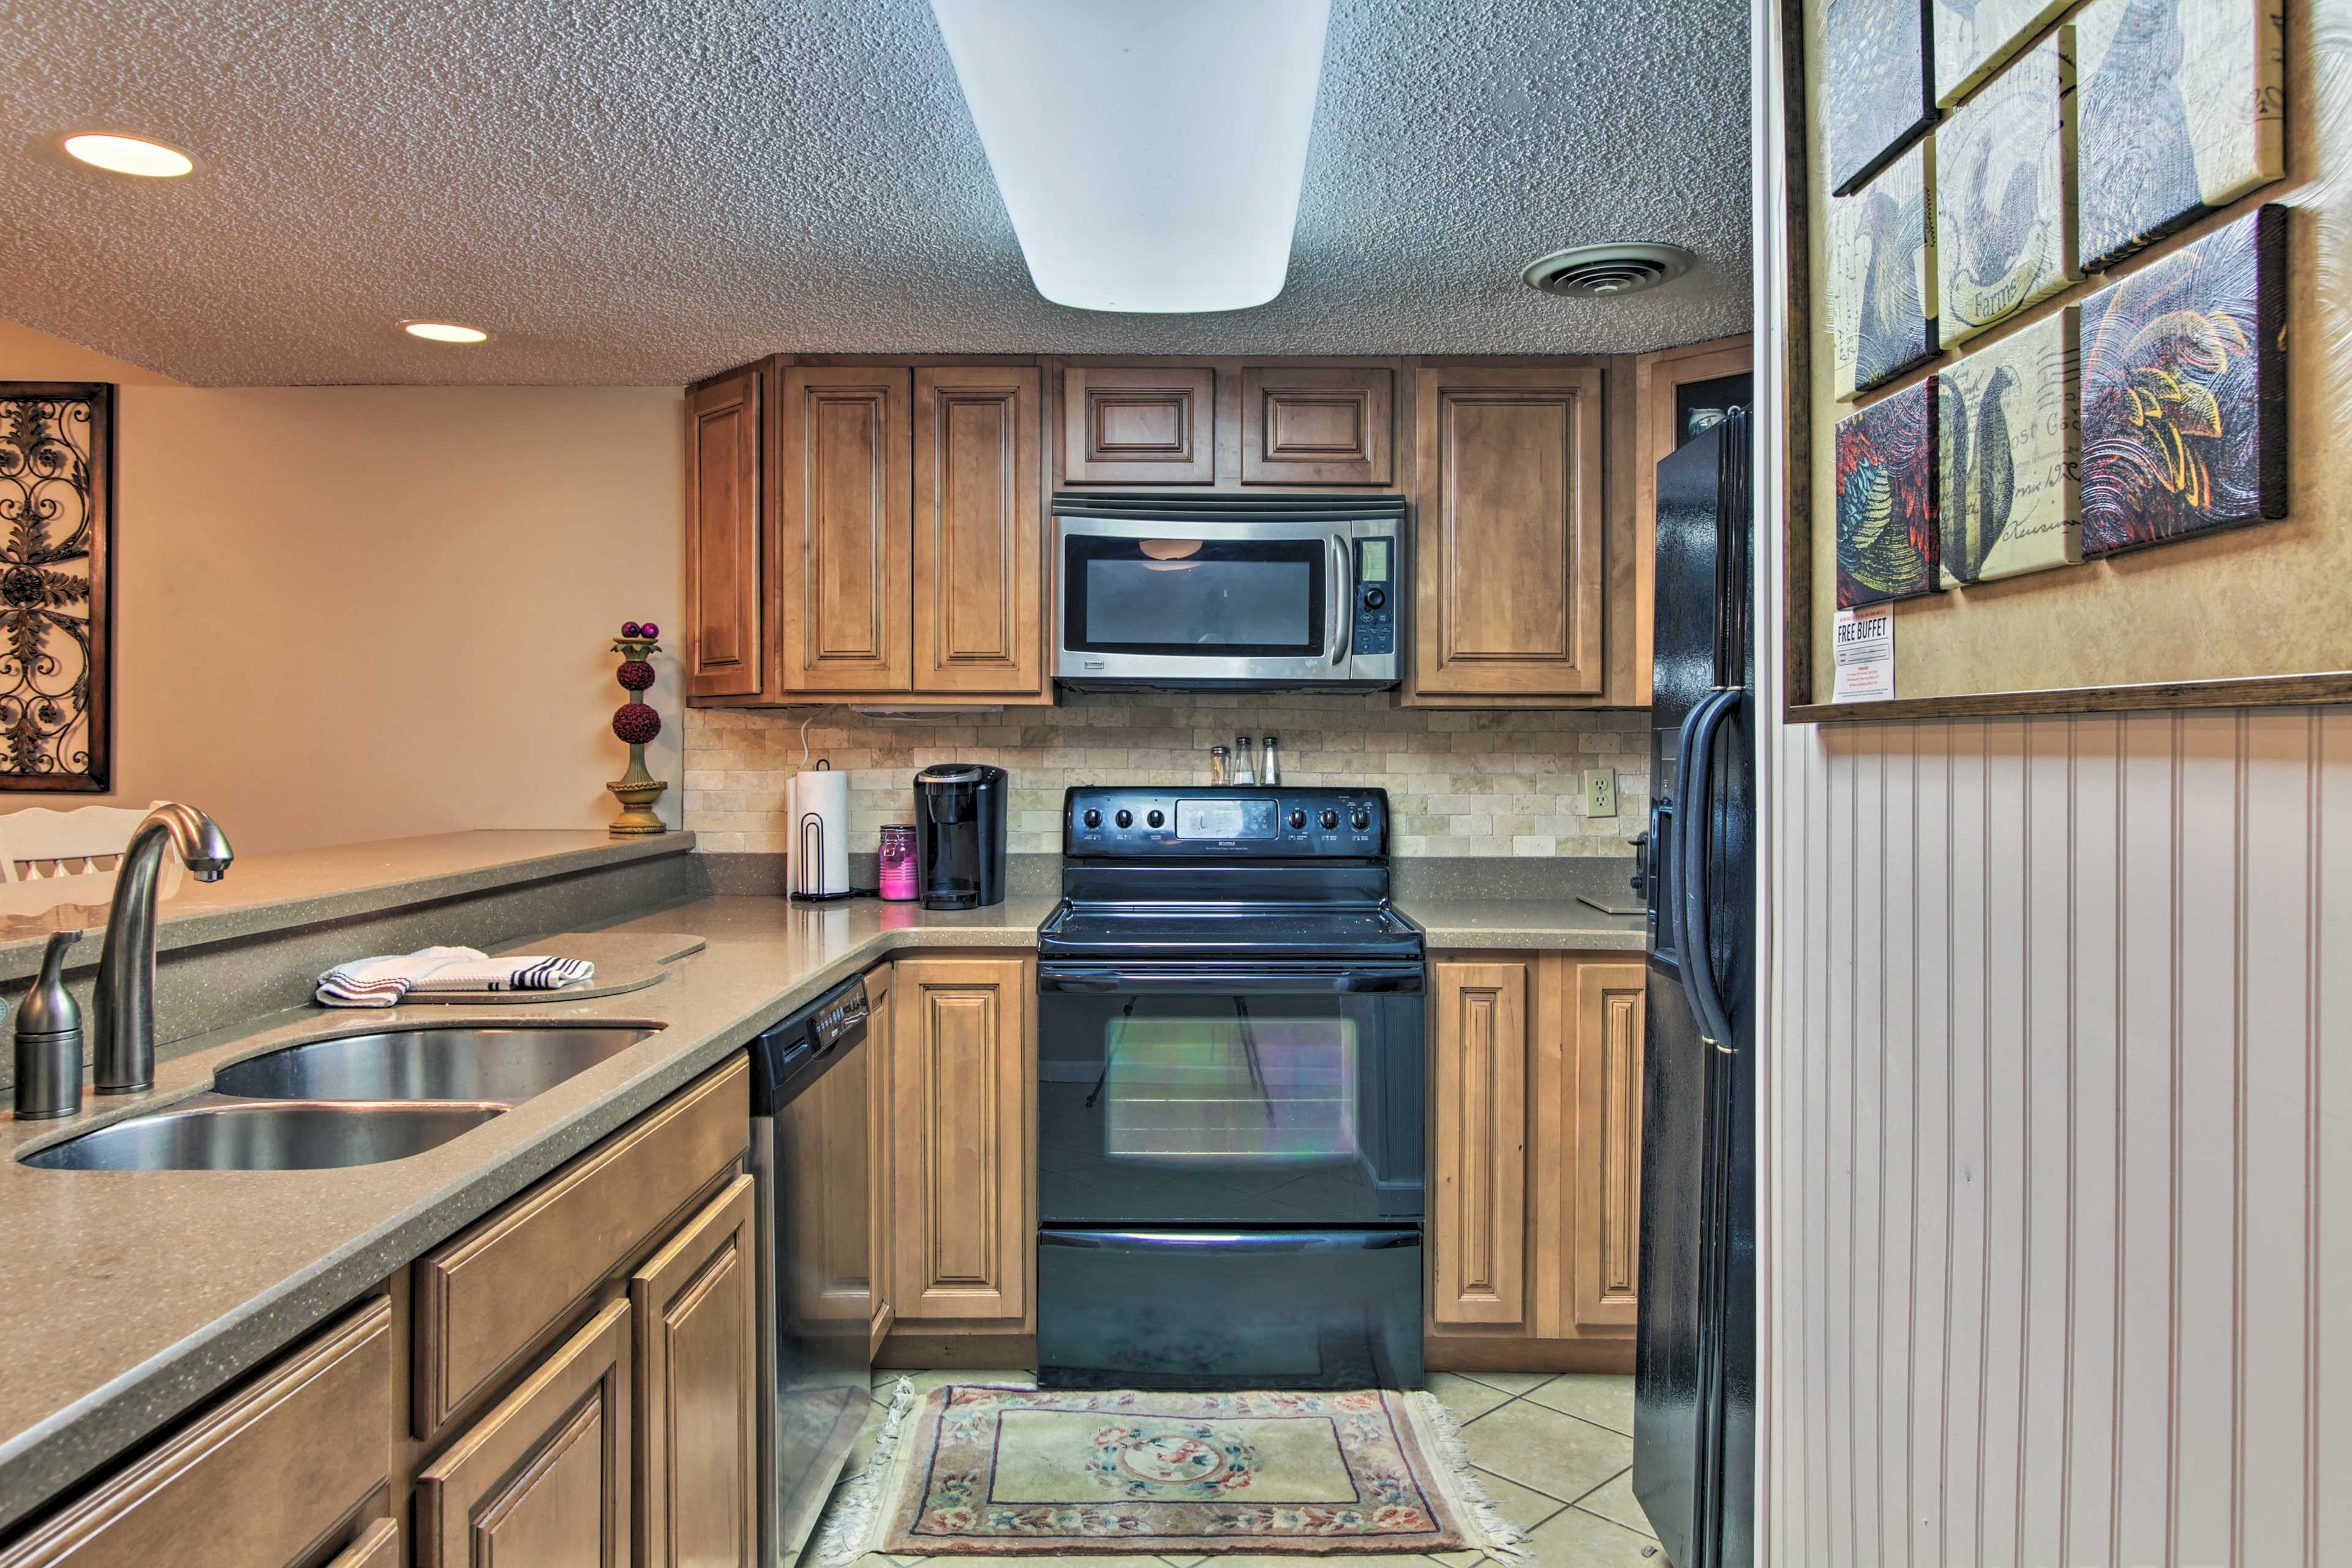 The fully equipped kitchen features modern appliances.